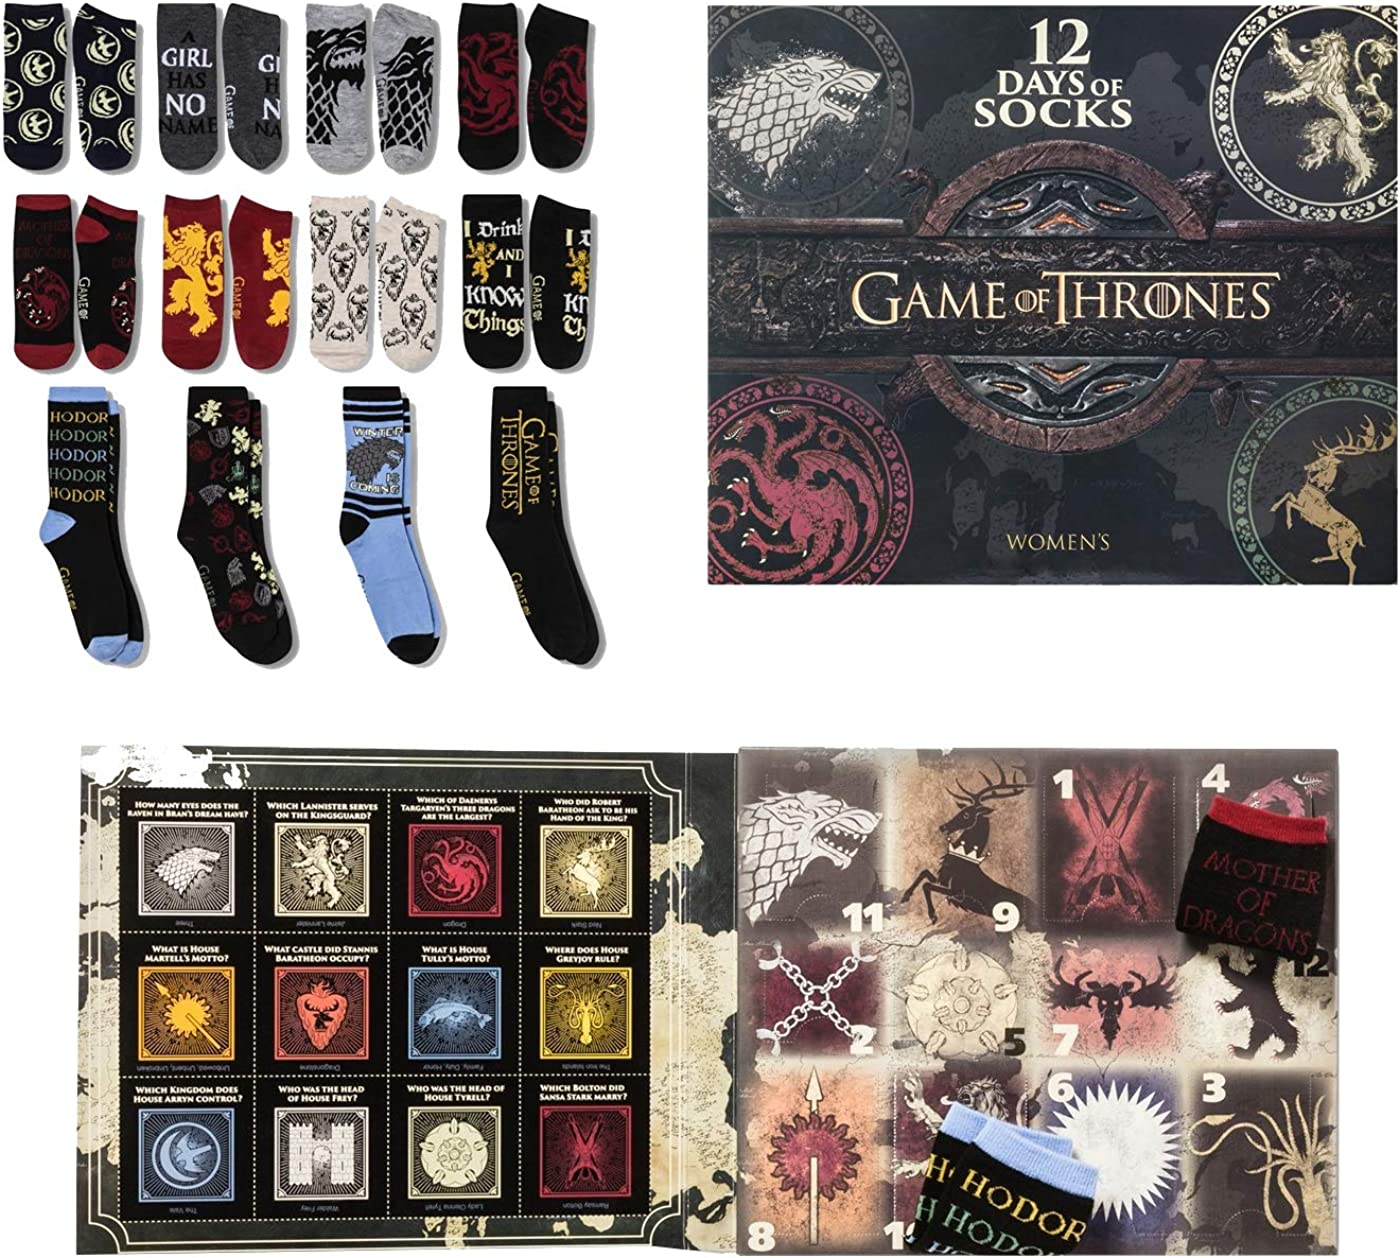 Women's Game of Thrones 12 Days of Socks Advent Calendar - Colors May Vary 4-10